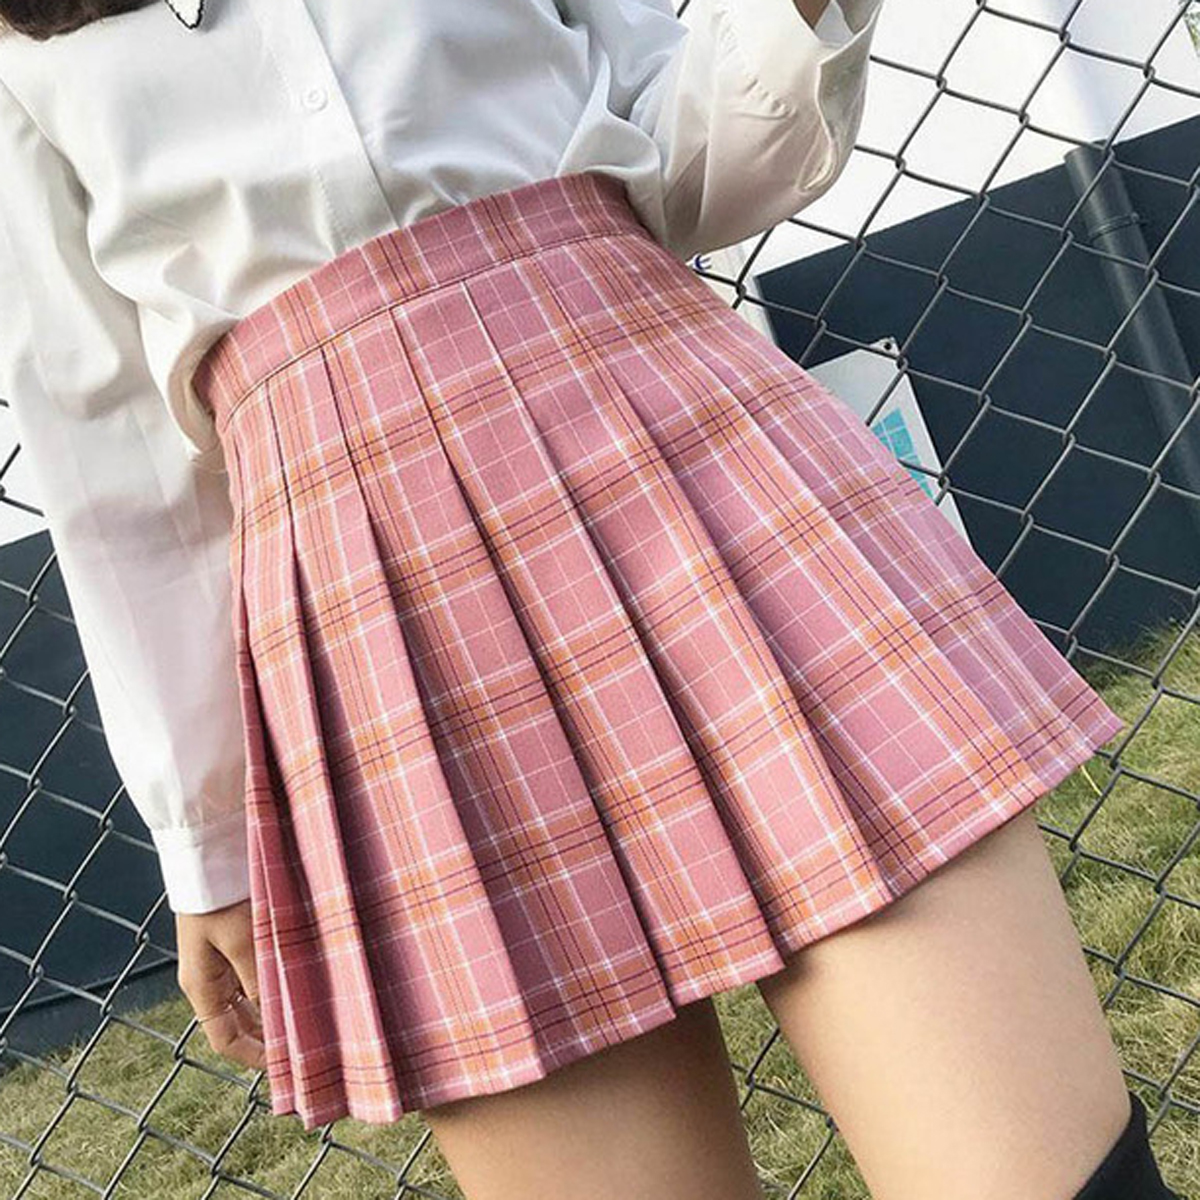 Women Girls Plaid Skirt High Waist Pleated Skater Skirt A-line School Skirt Uniform With Inner Shorts Casual Skirt Skinny Girls